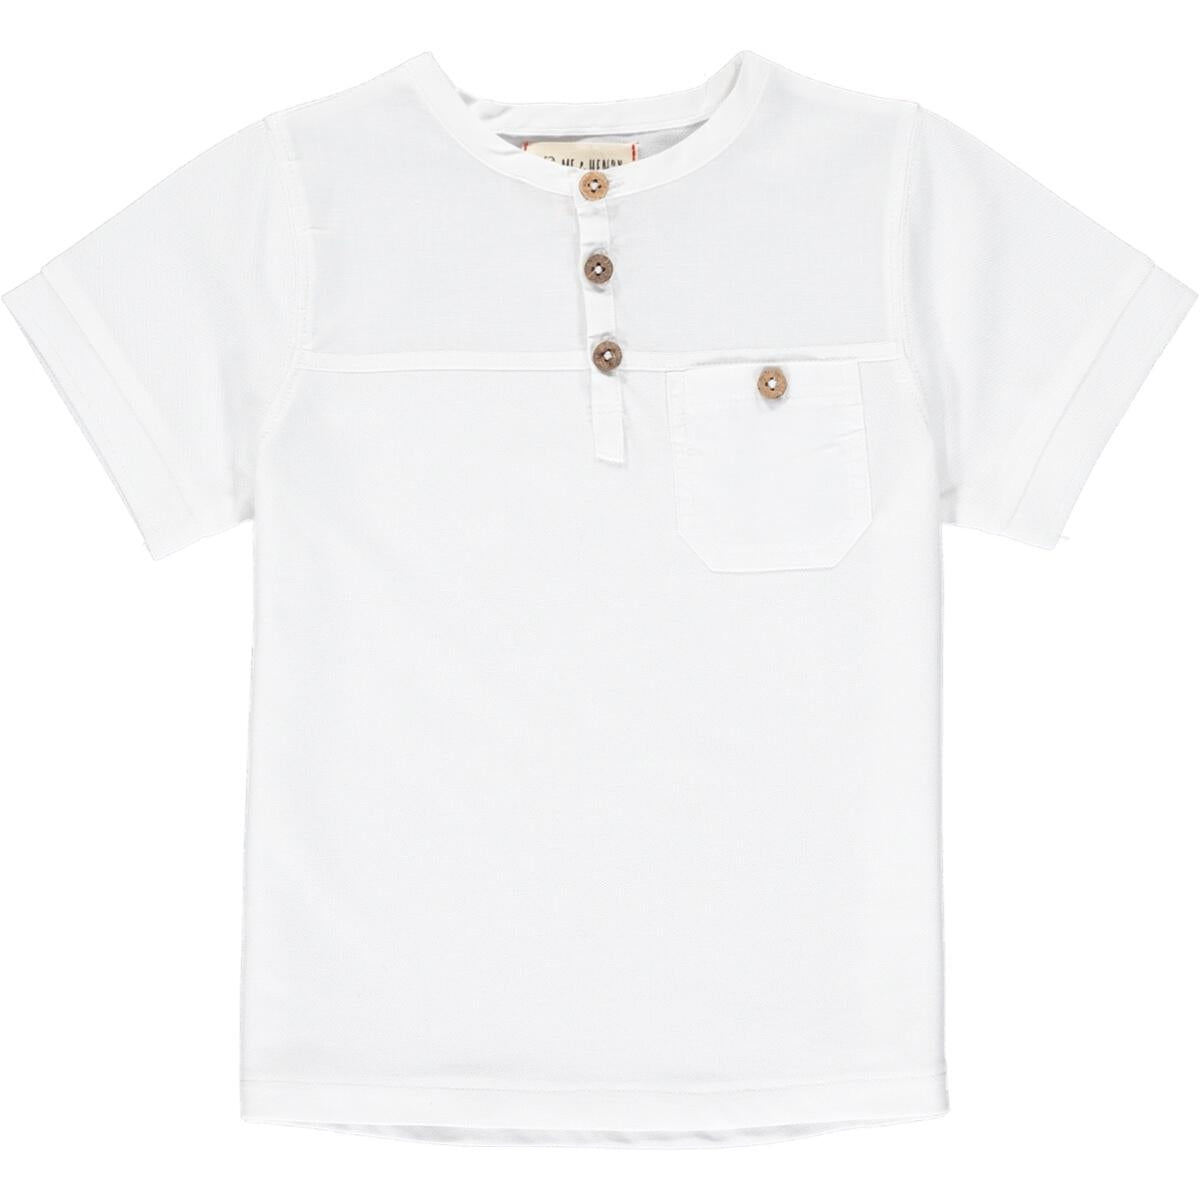 Pique Henley Tee Shirt in White